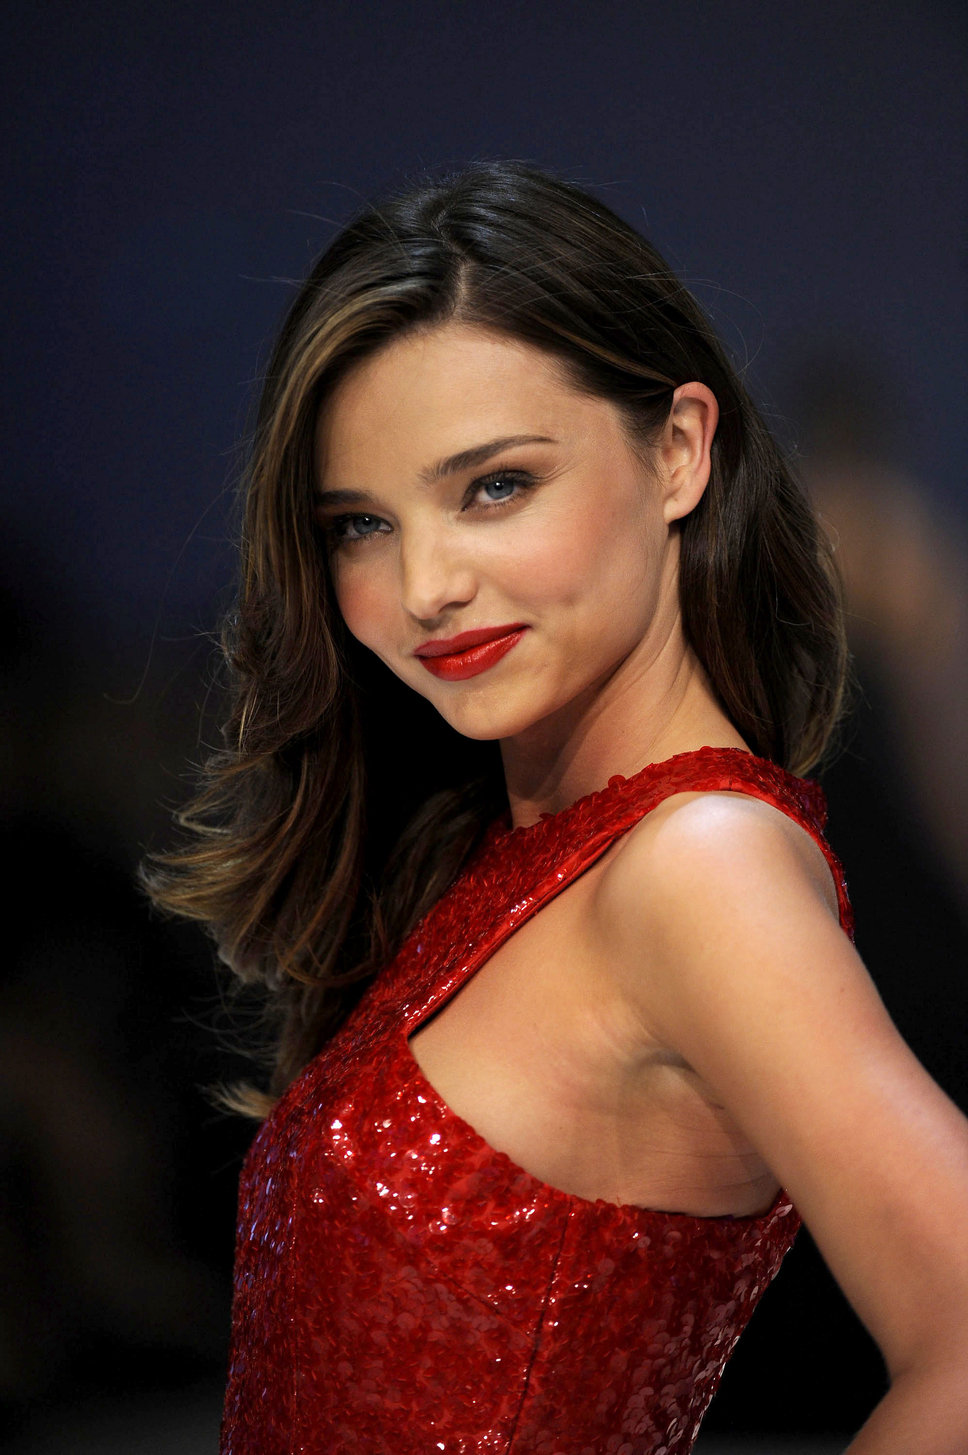 Online Auto Insurance >> hairstyles for men: Hair Miranda Kerr - Miranda Kerr ...